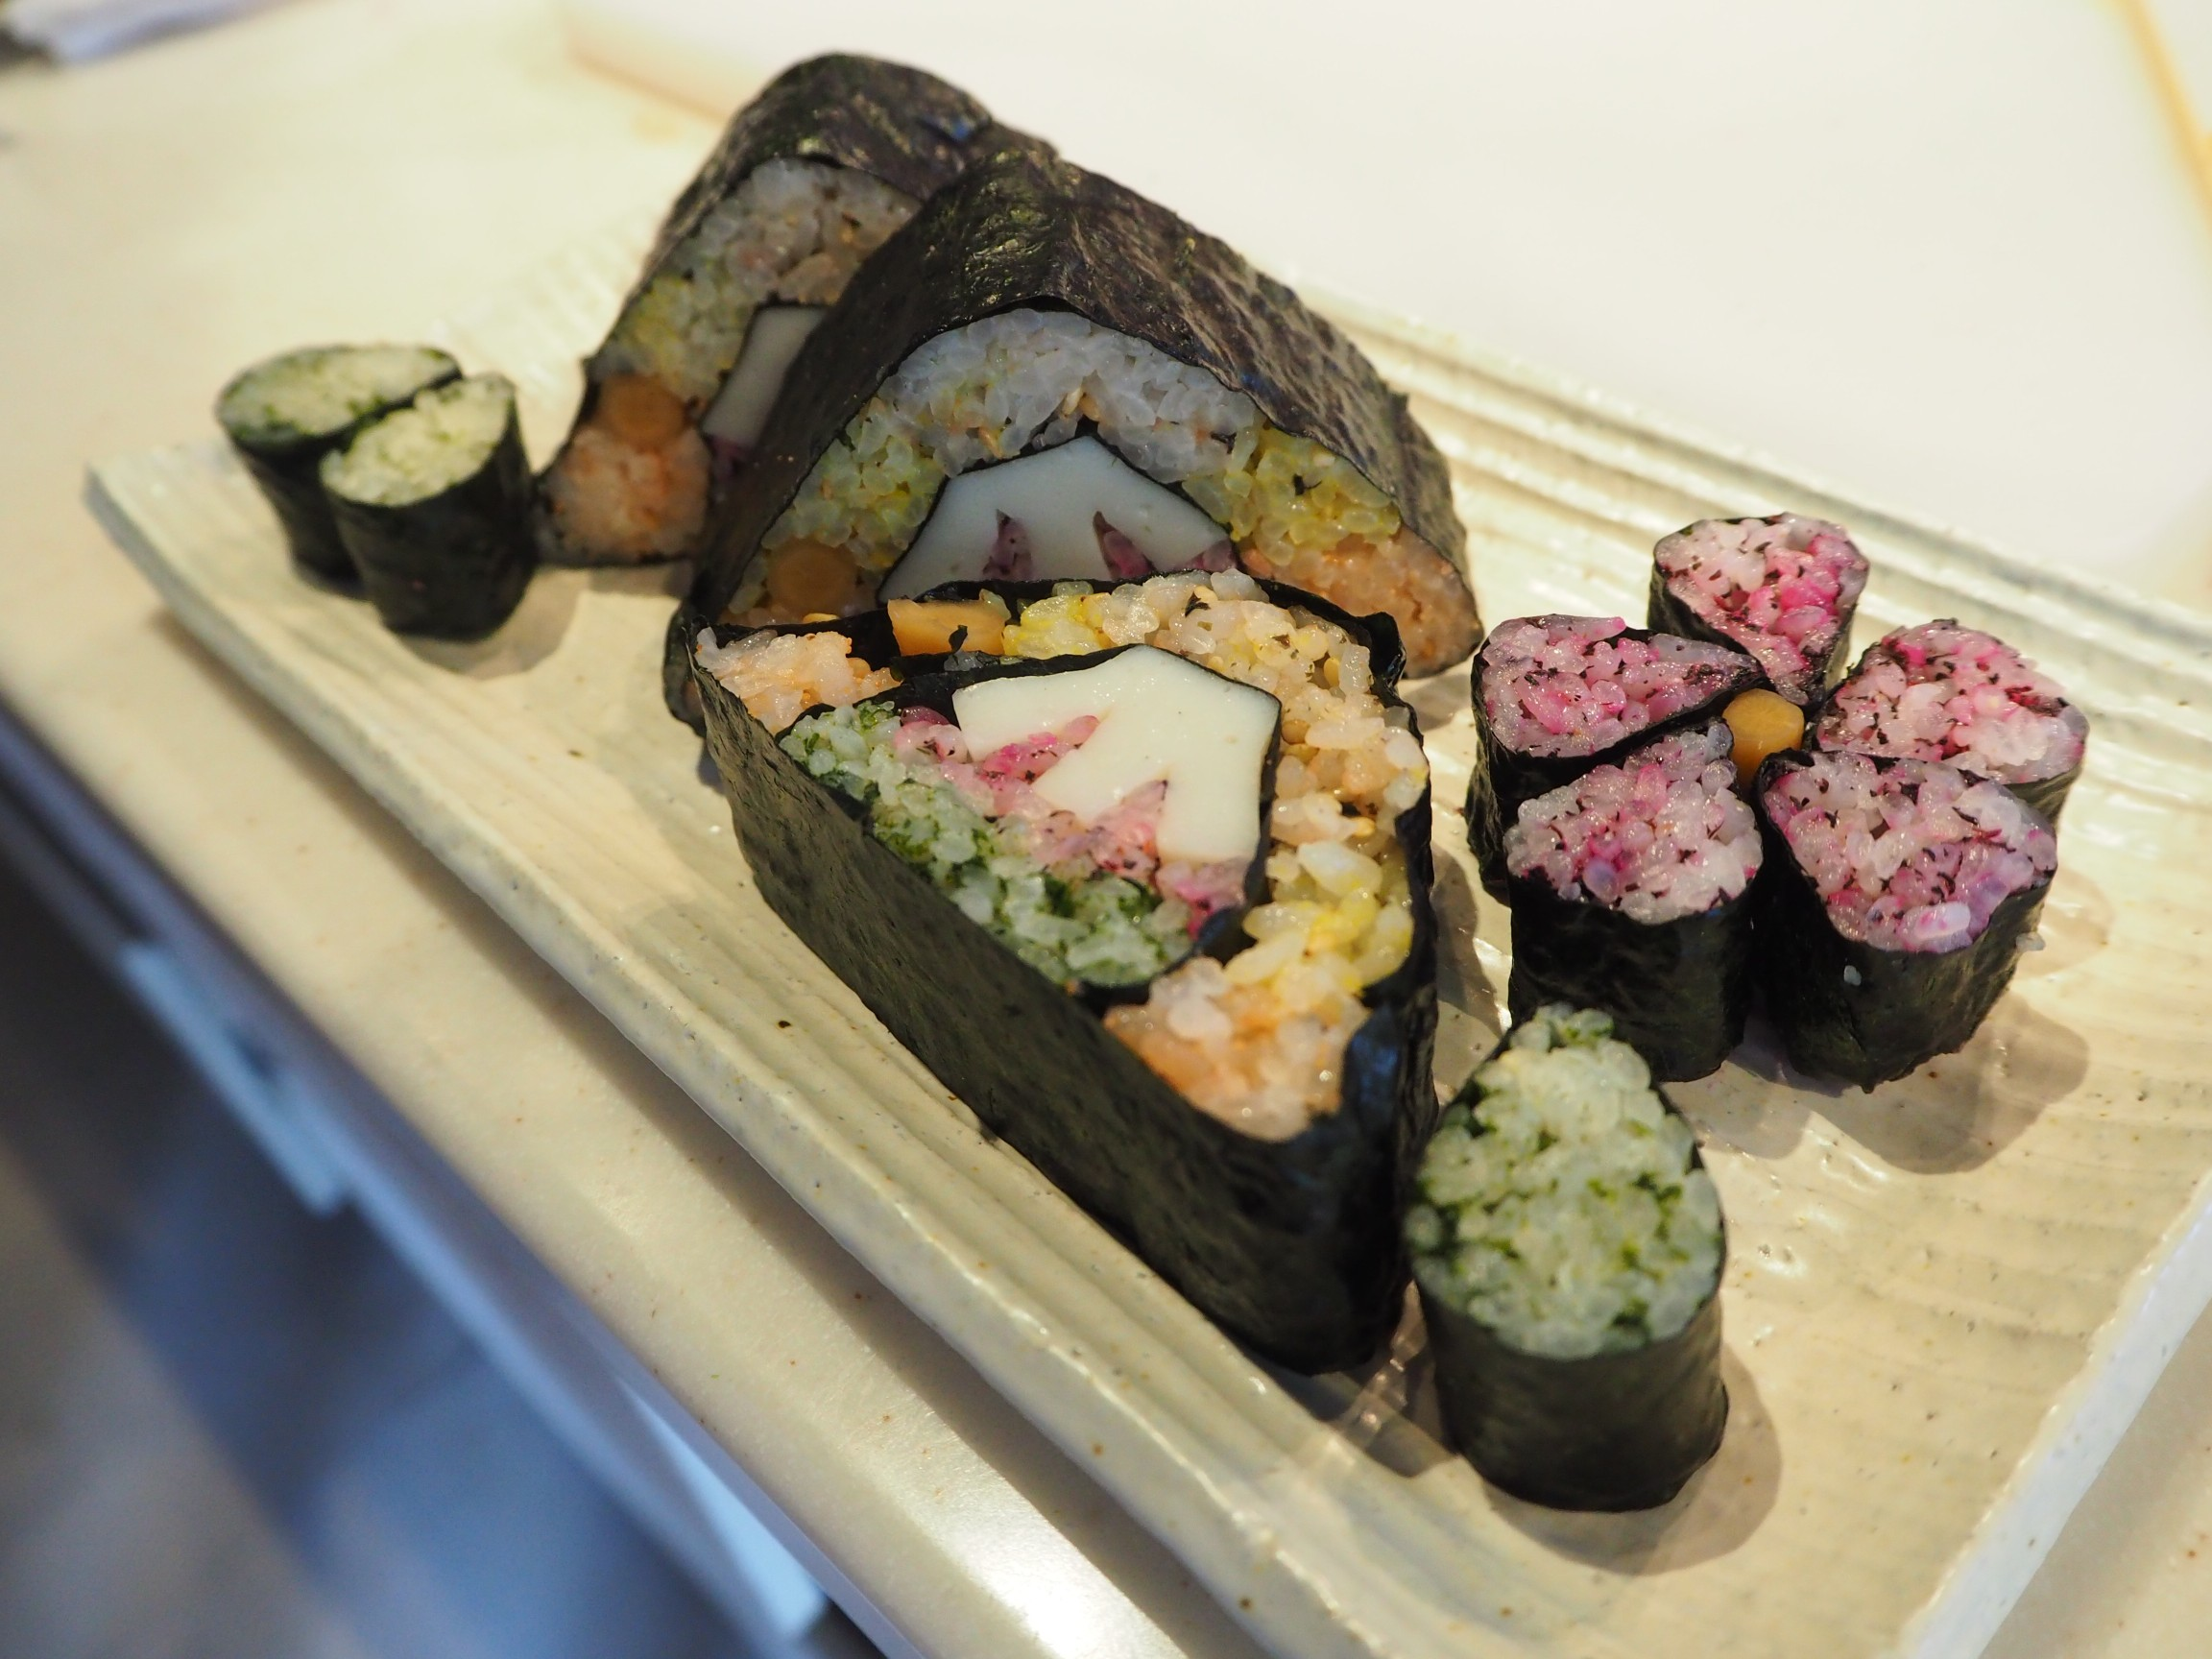 [AM] Nihonbashi Best of Japan Gourmet Tasting Tour + Rolled Sushi Cooking Class